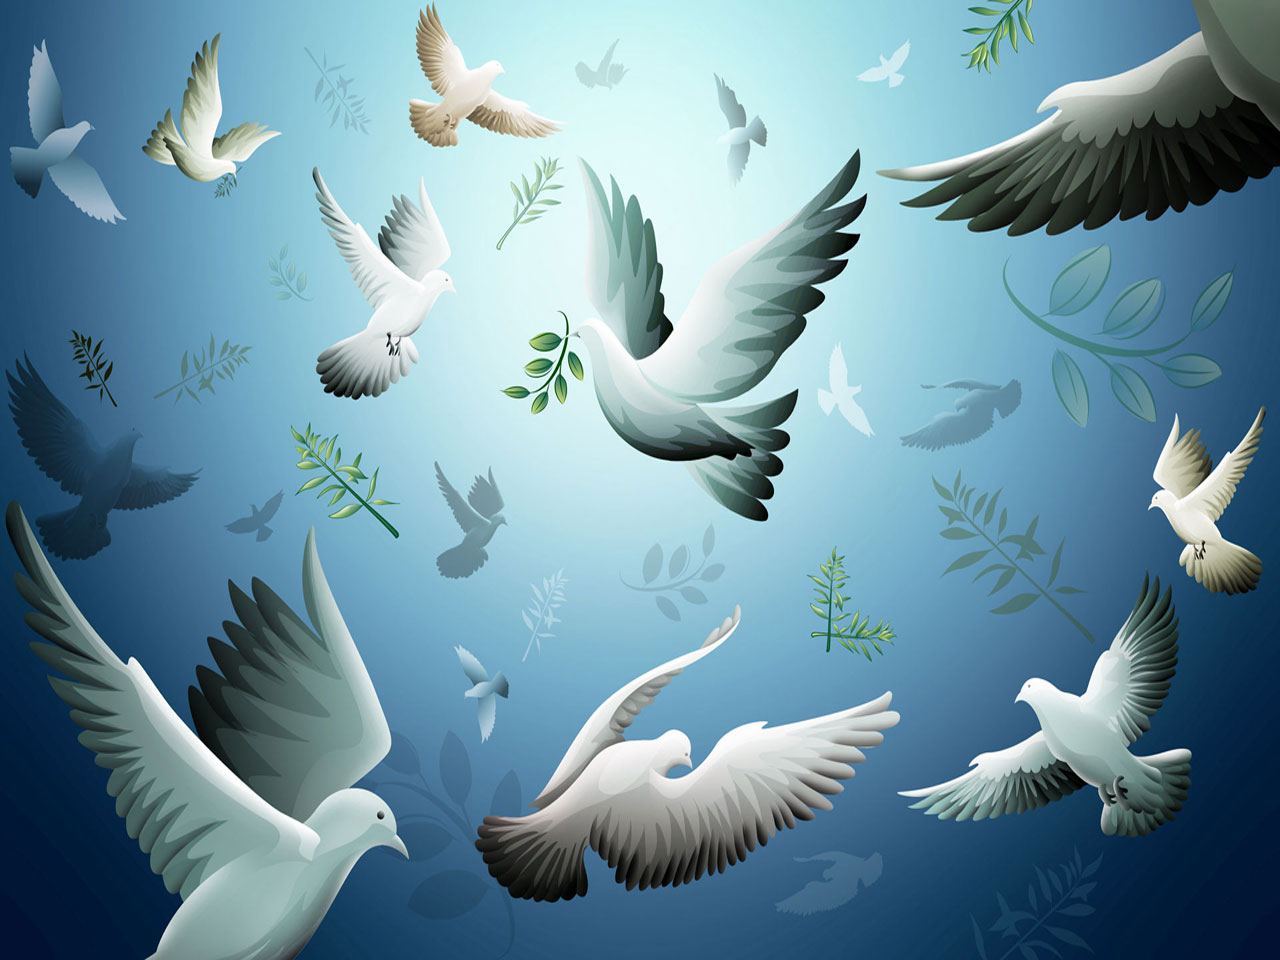 Animatednaturewallpaper Animated Pigeons Wallpaper